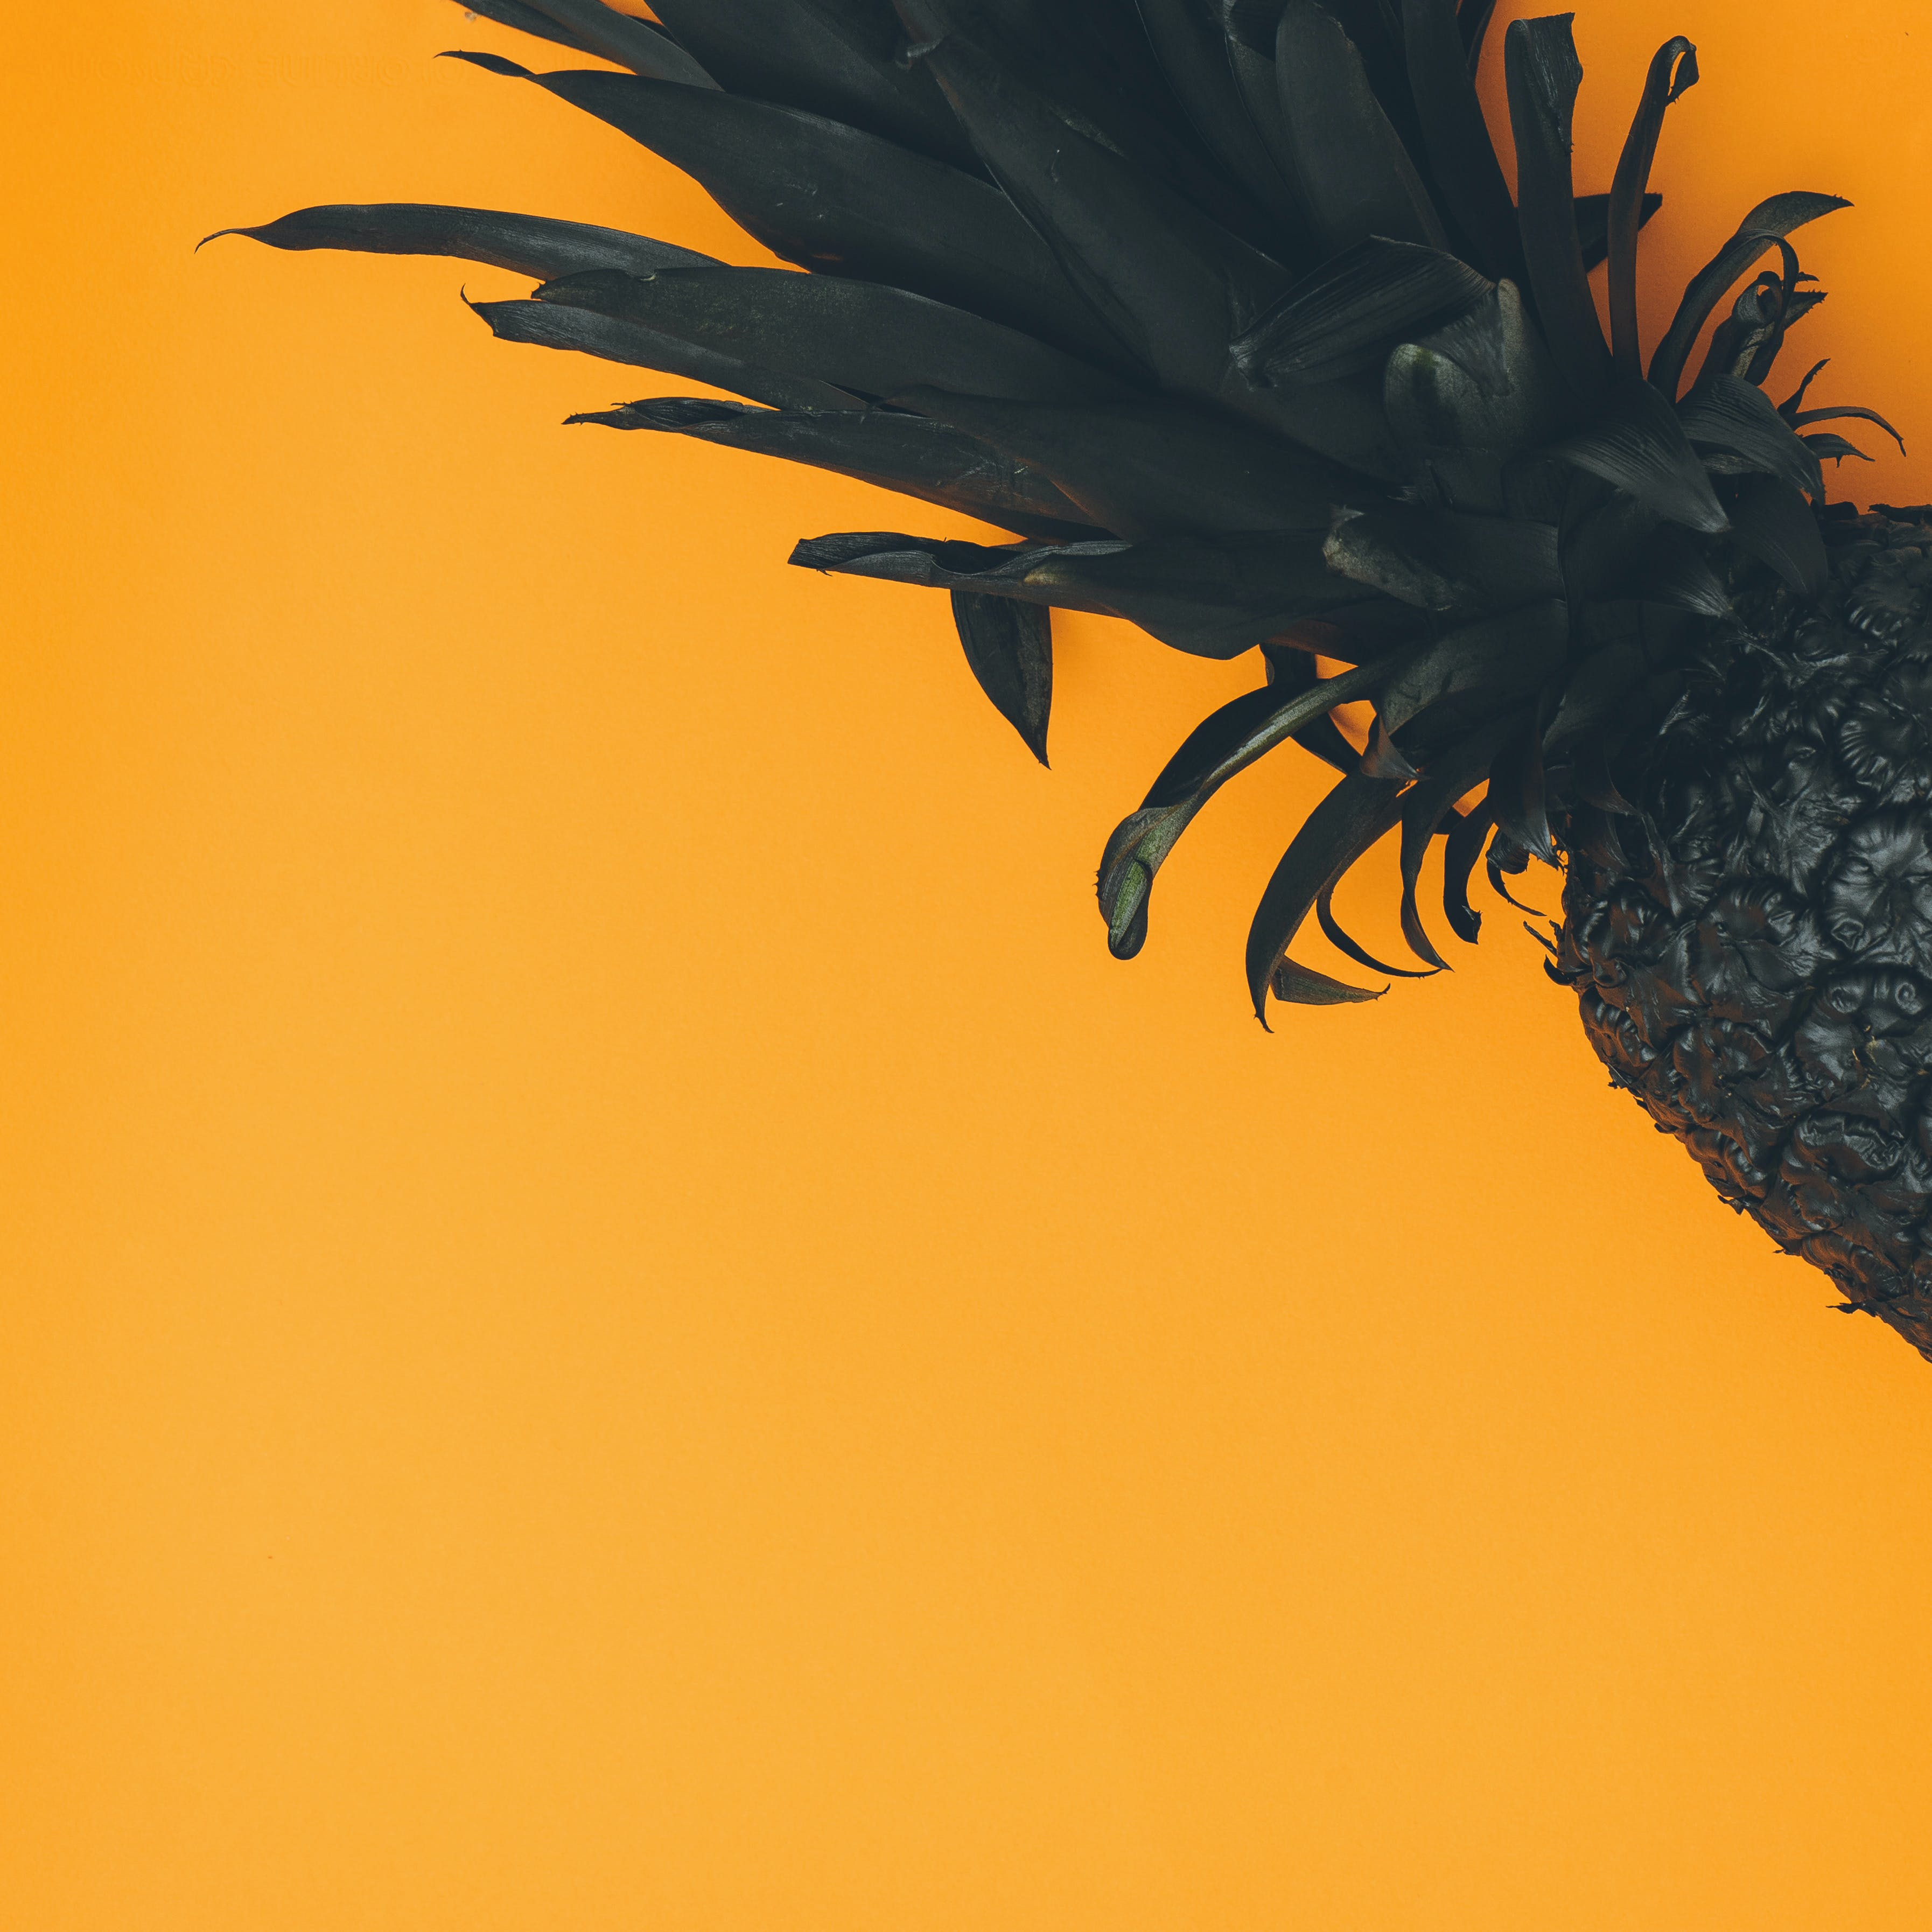 Free stock photo of art, orange, pineapple, black